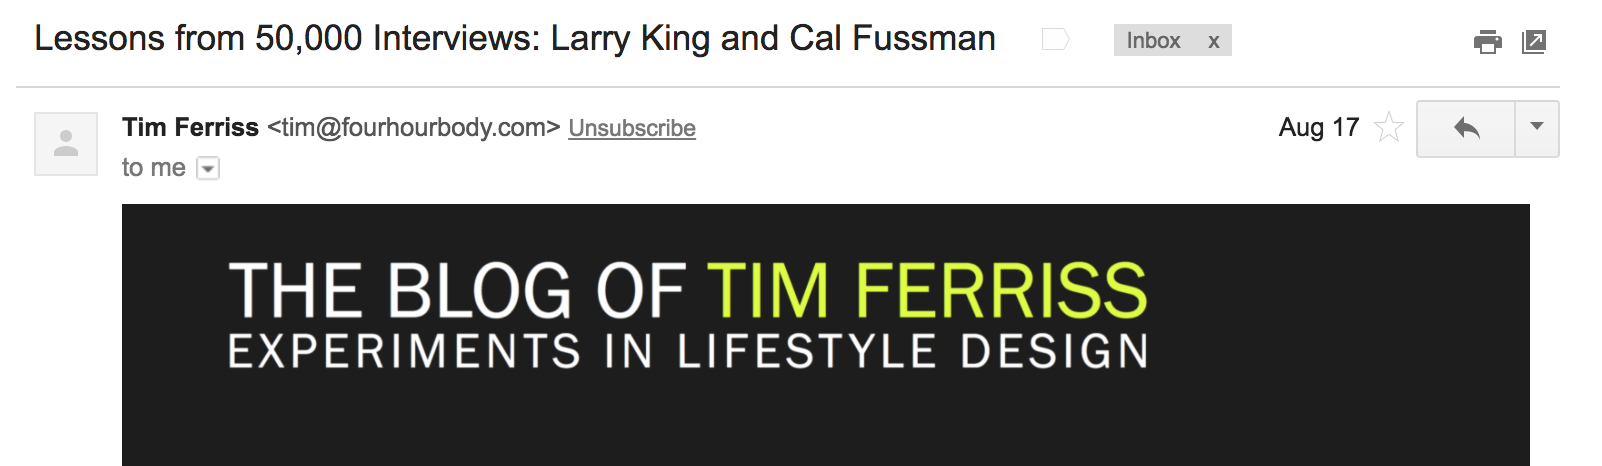 Tim ferriss interesting email subject example